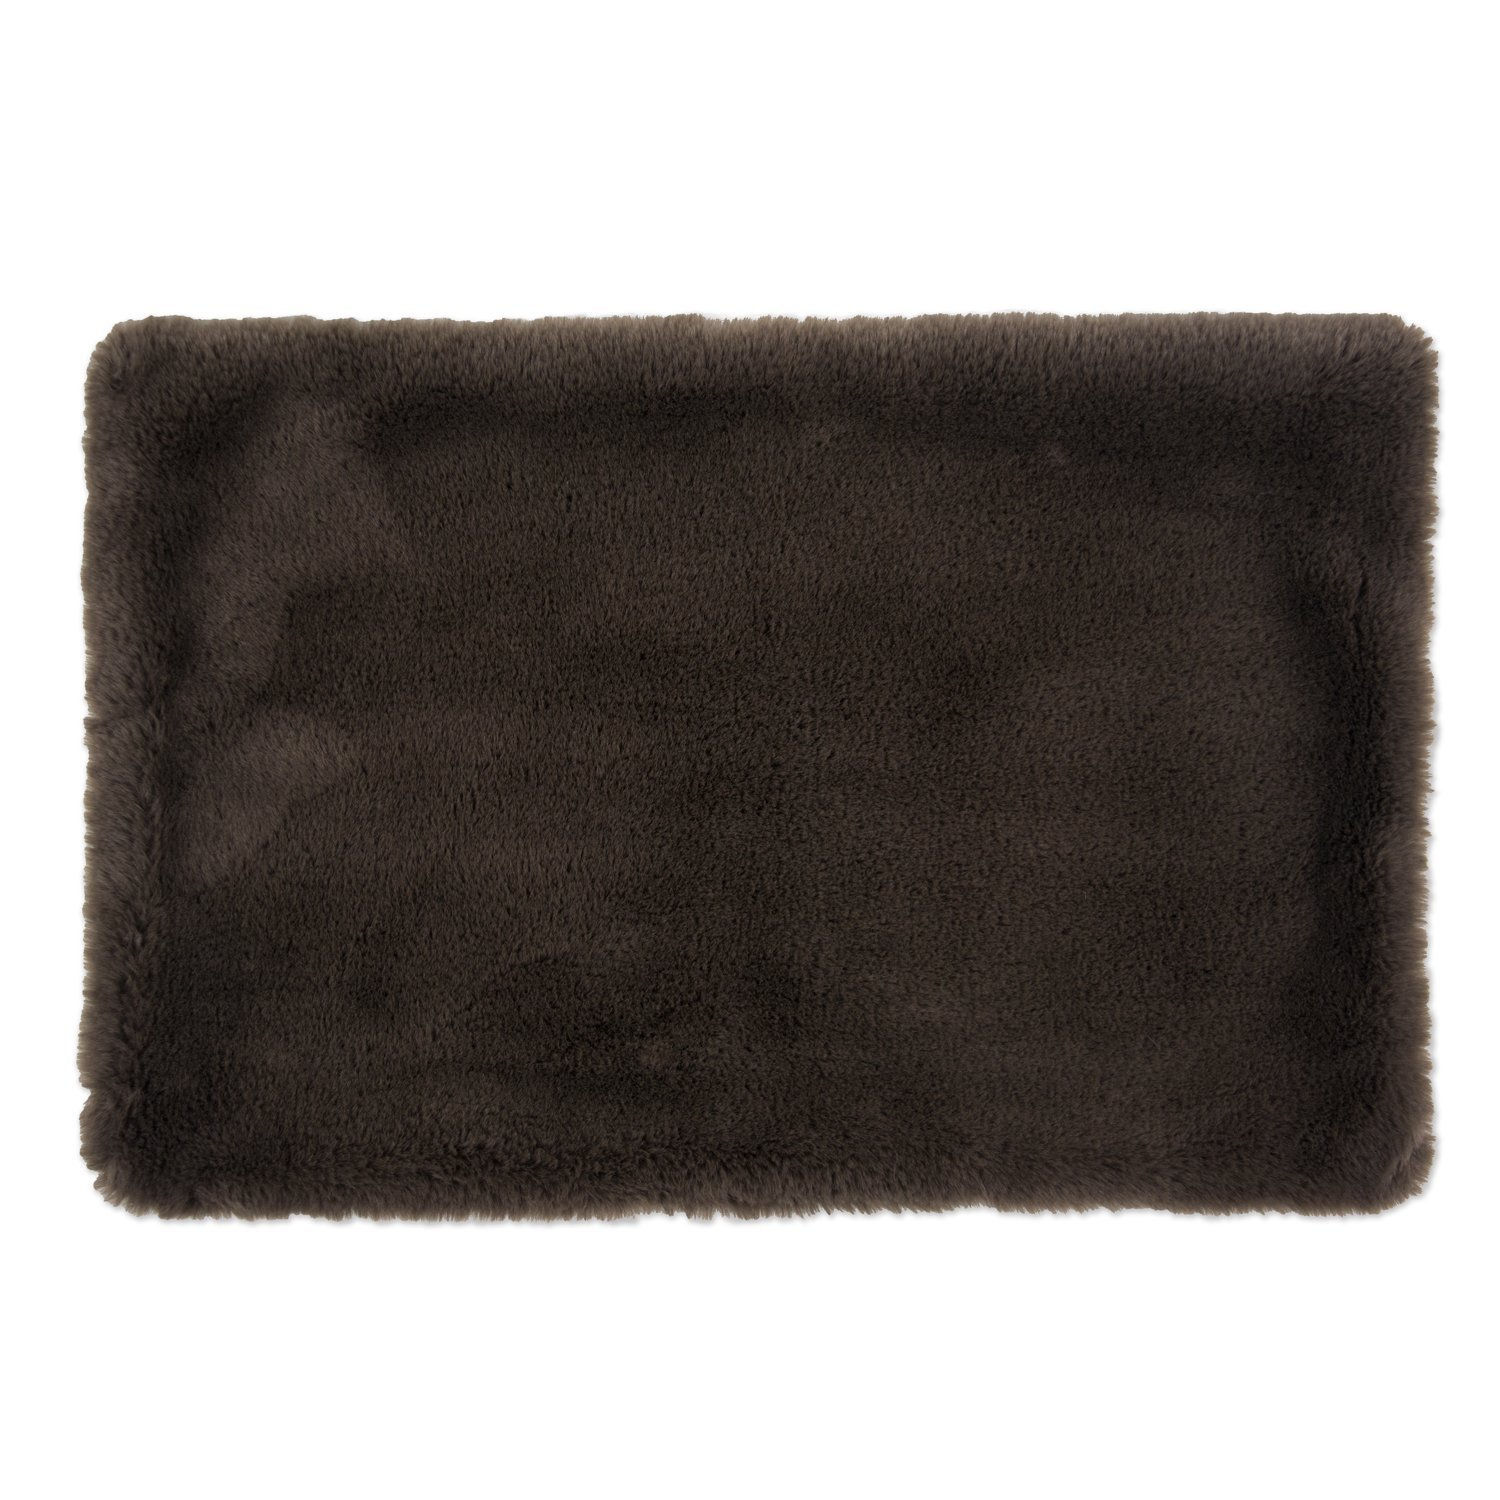 DII Bone Dry Faux Fur Silky Soft XXX-Large Pet Cage Liner for Dogs & Cats, 29X48'', Perfect for Kennels, Car Trips, Floors, Crates-Brown